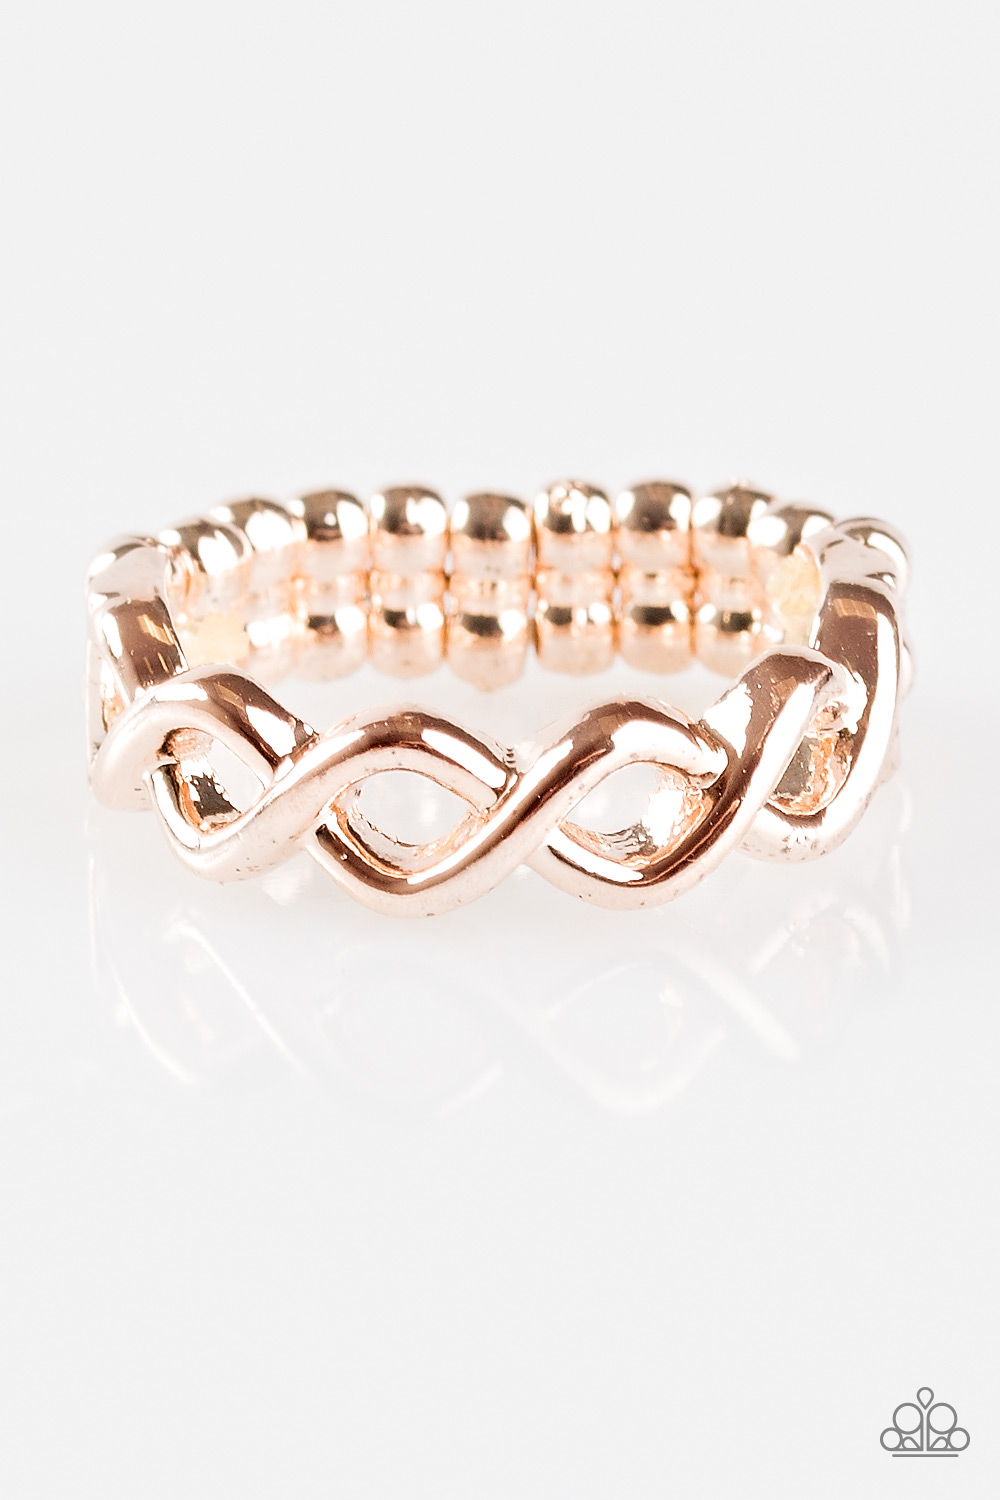 Follow Your GLEAMS Rose Gold Rose gold, Gold, Rose